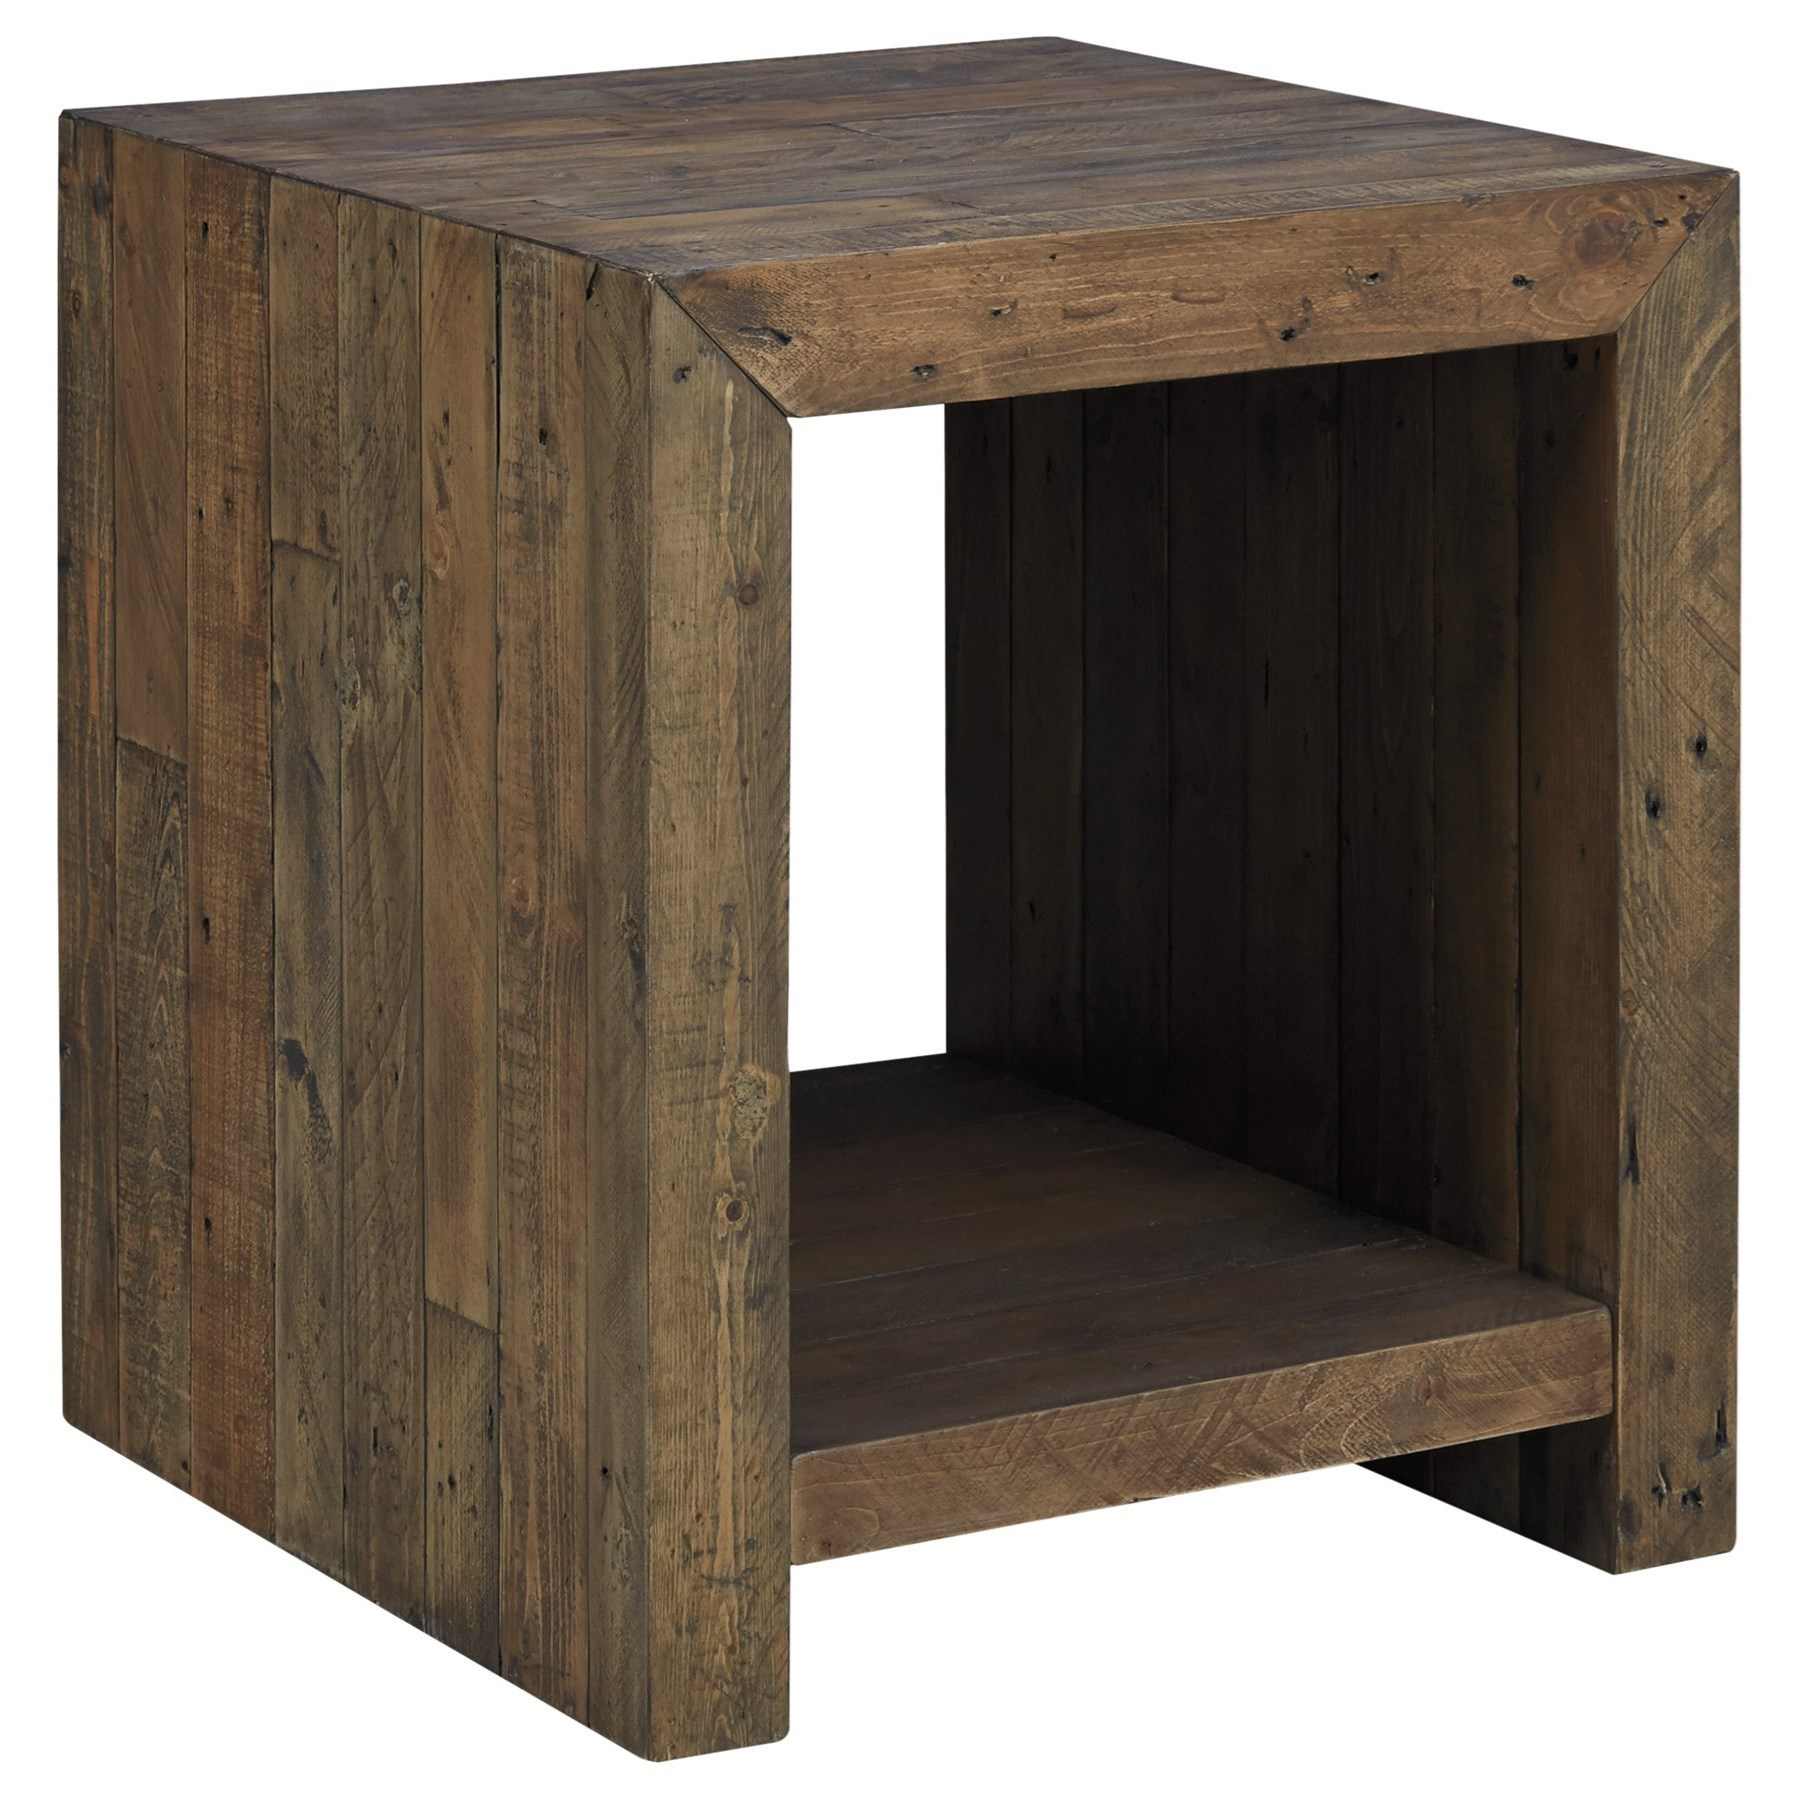 Signature Design By Ashley Sommerford T975 3 Reclaimed Pine Rectangular End Table Furniture